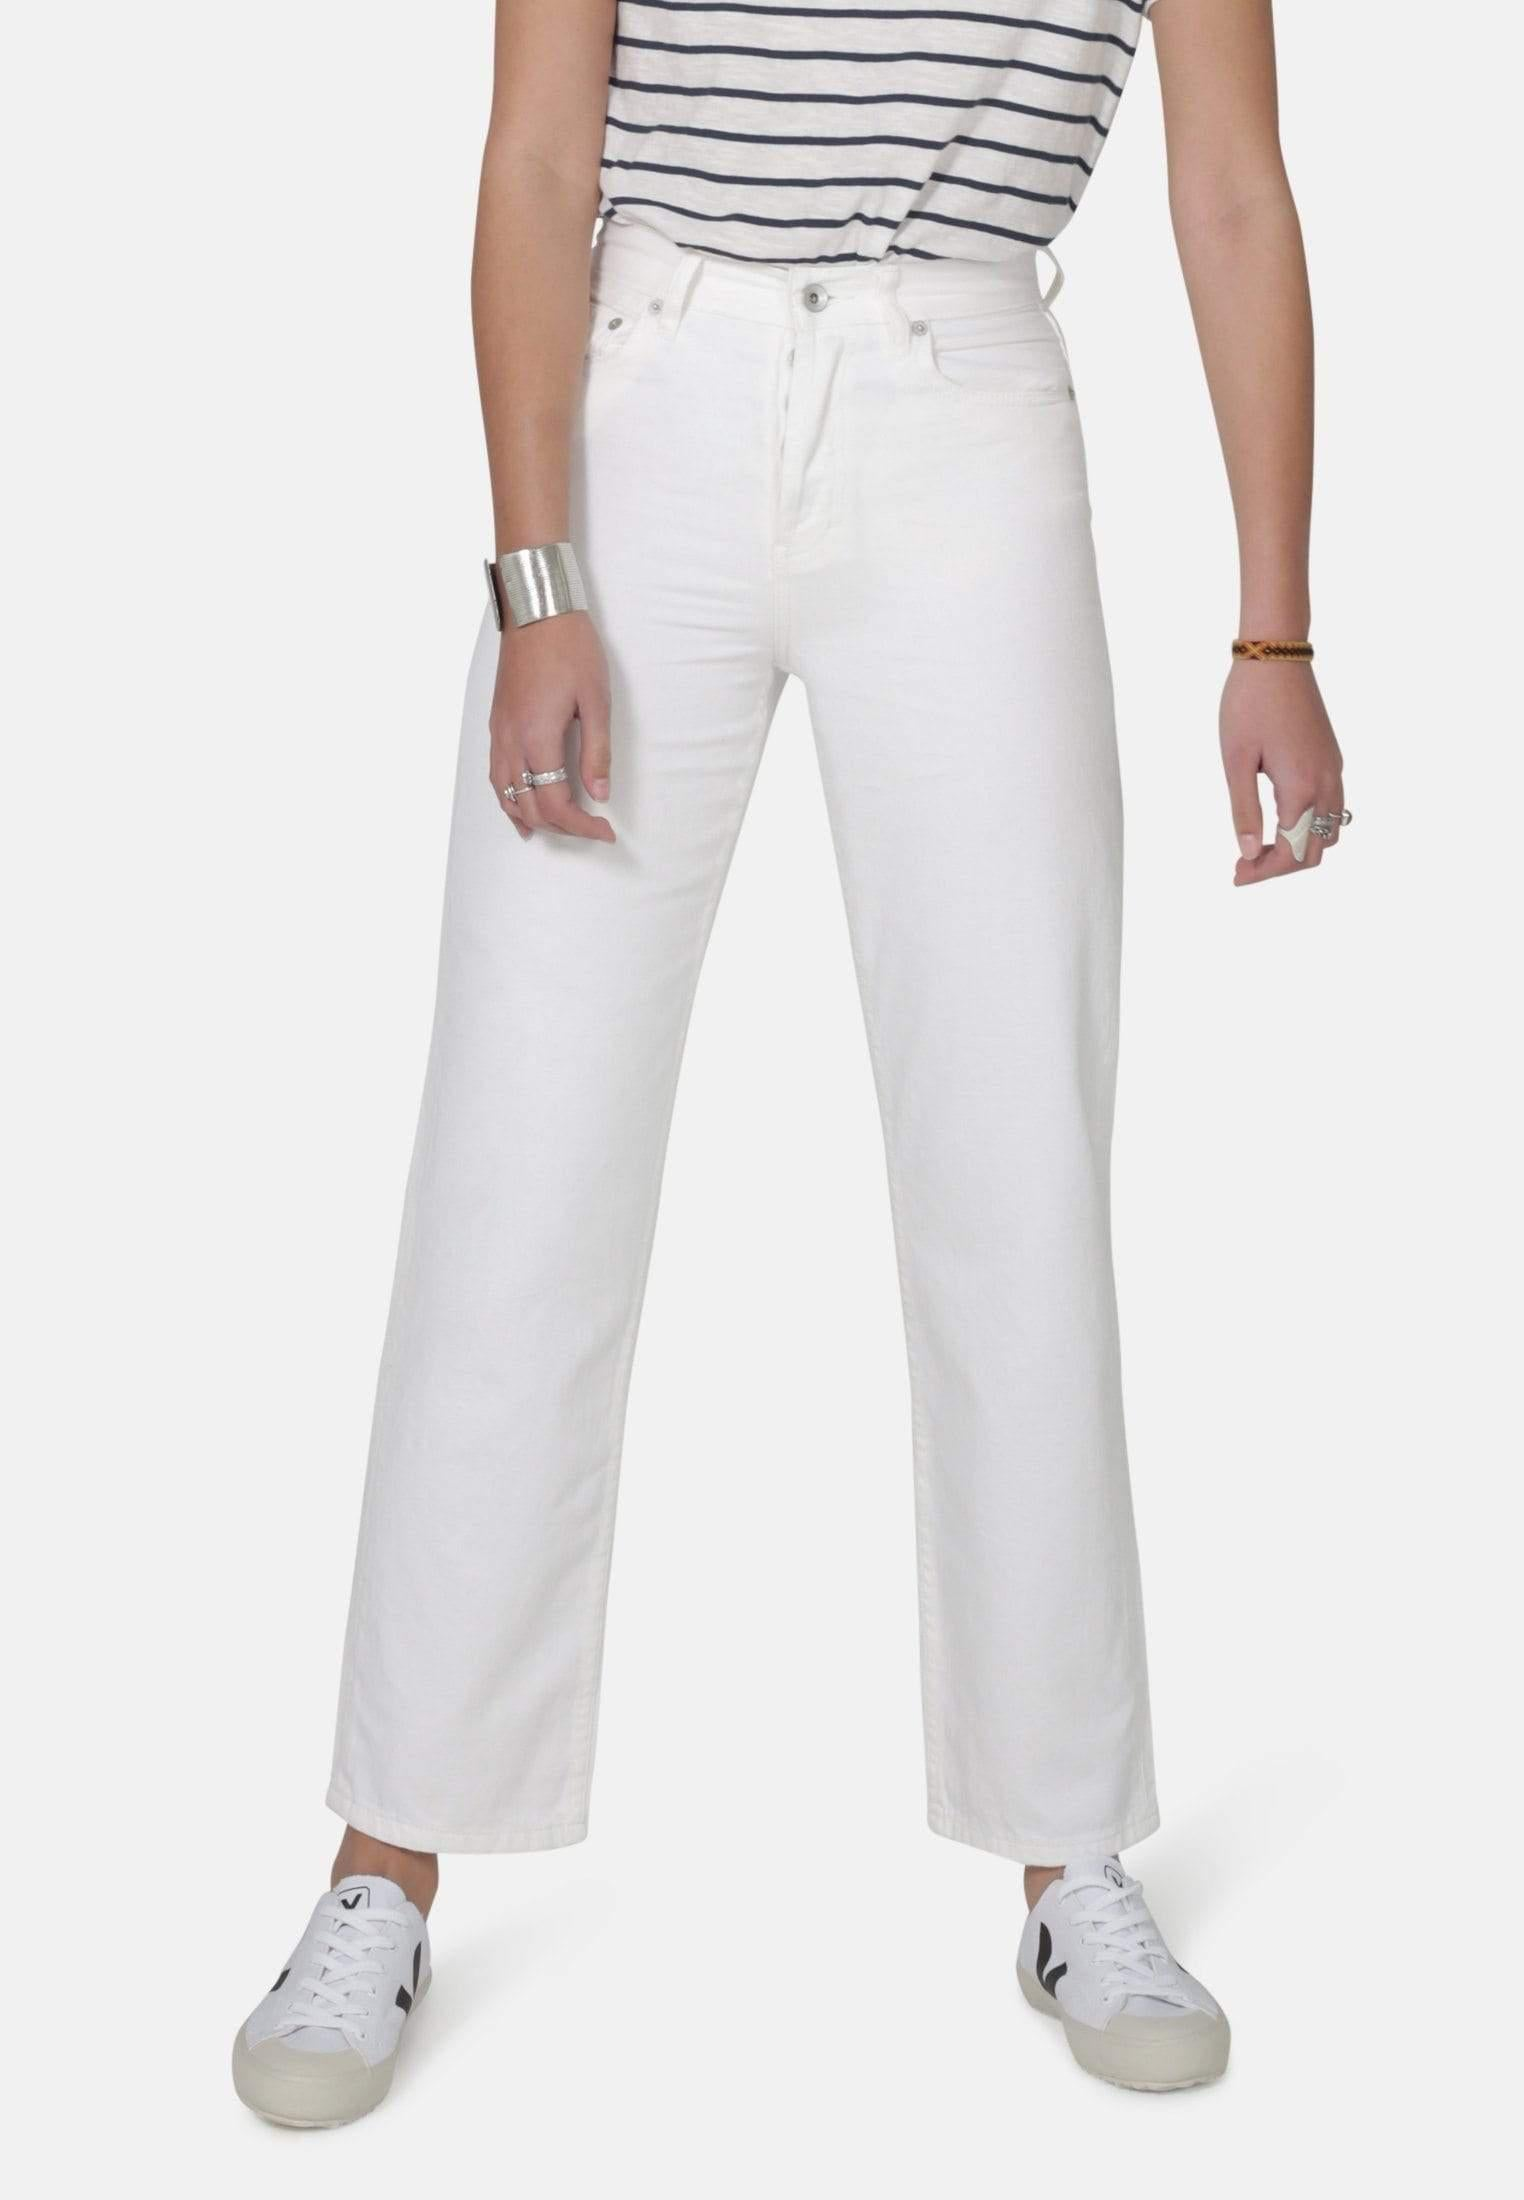 KOMODO pant Libby Jeans. Organic Cotton. sustainable fashion ethical fashion